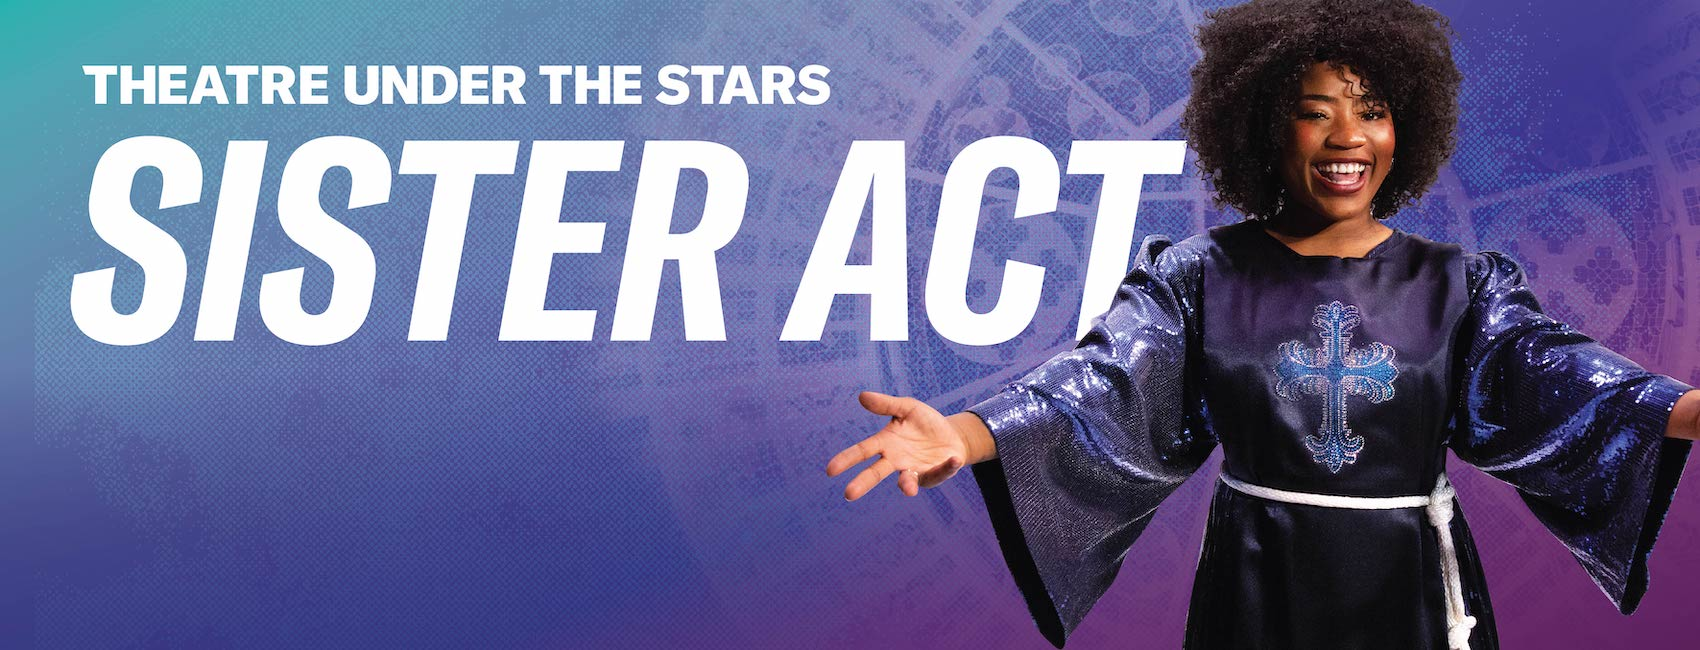 Sister Act, presented by Theatre Under the Stars